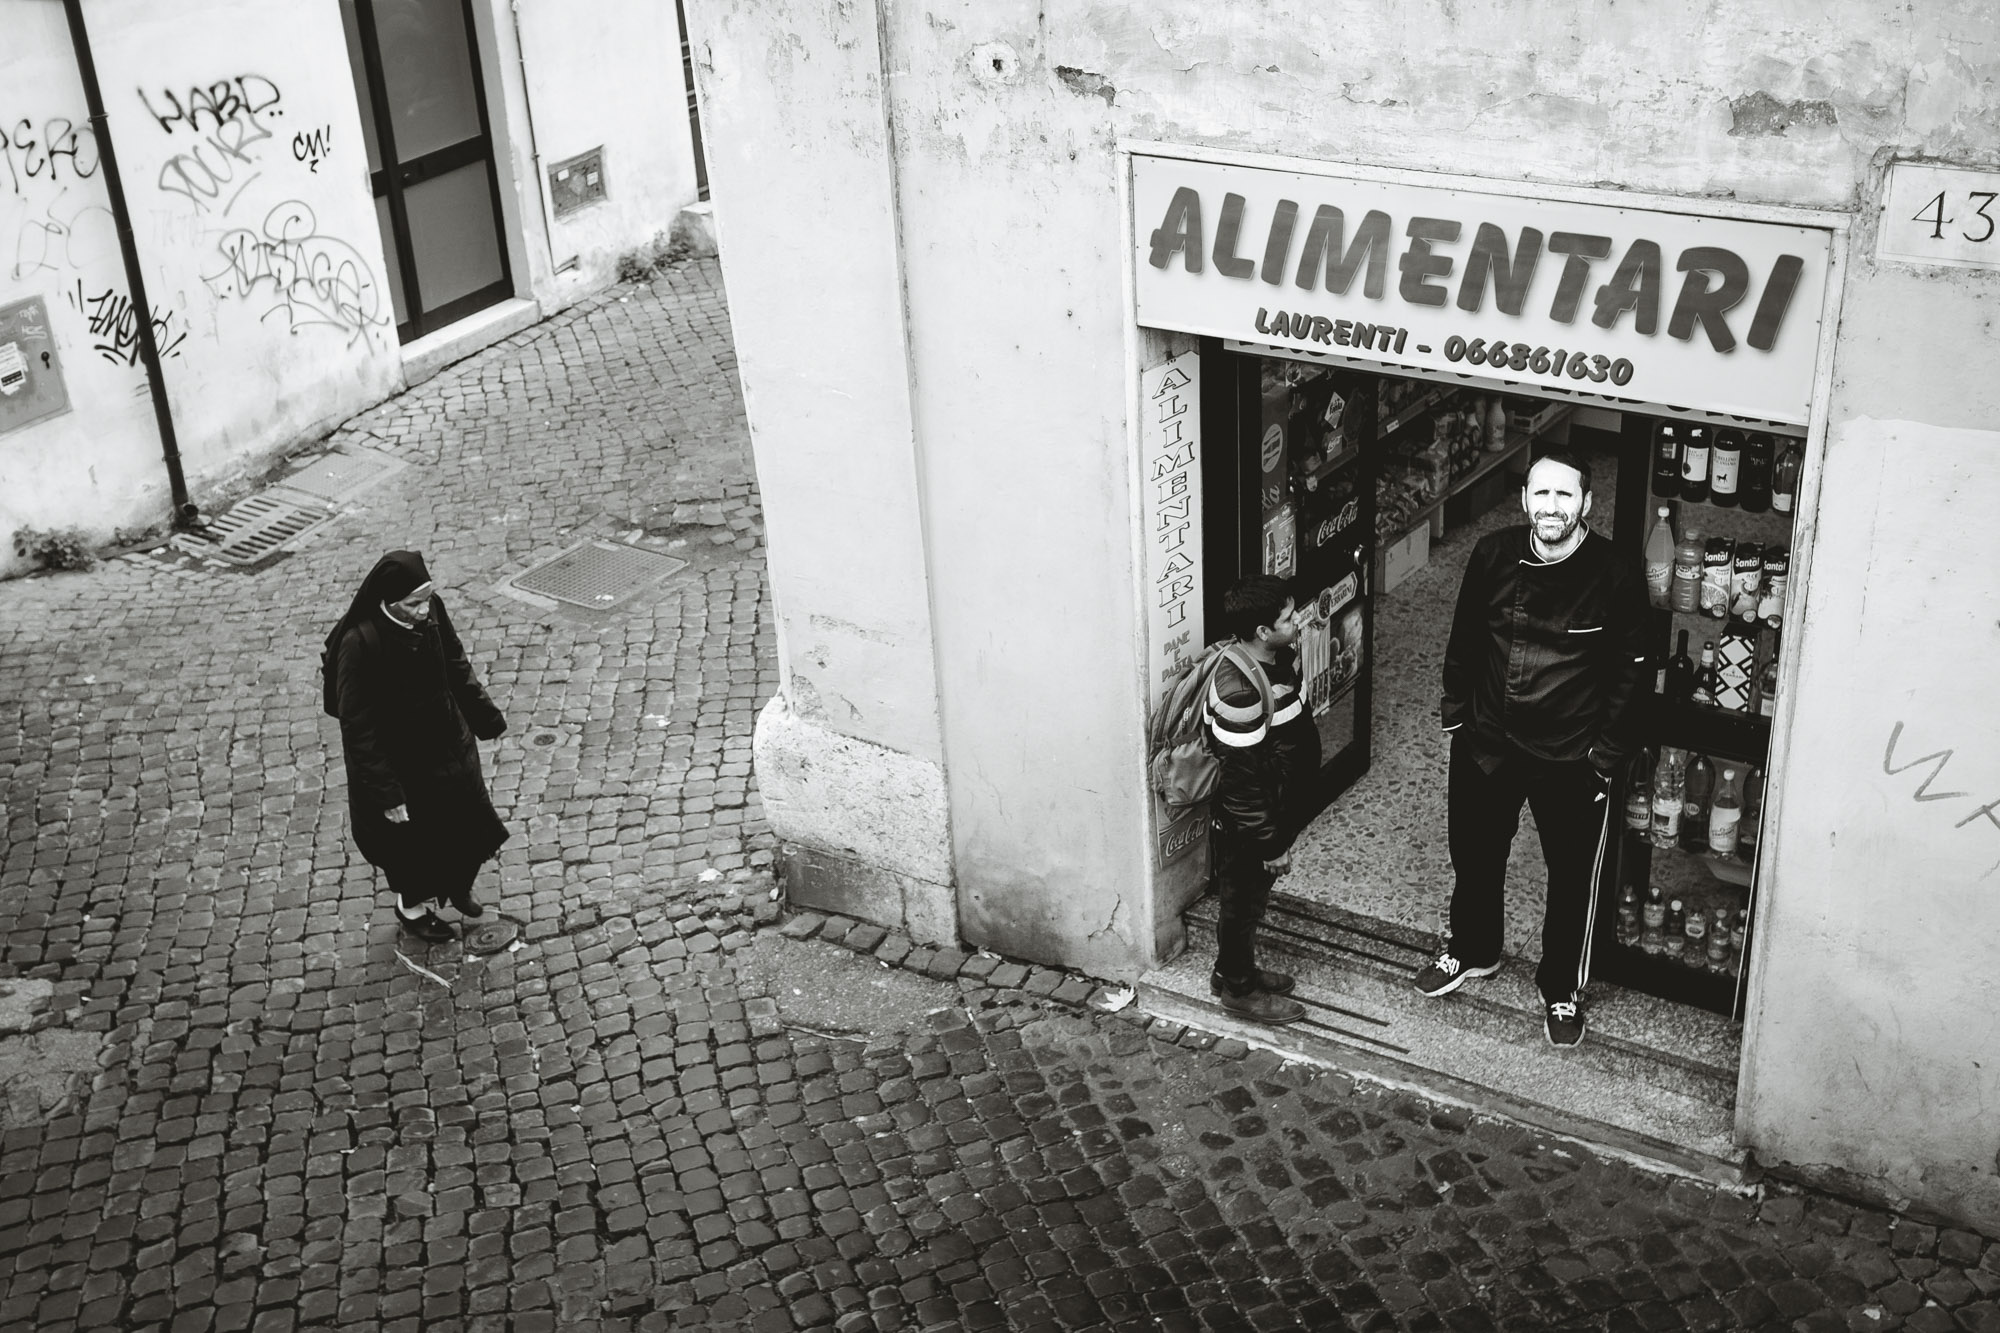 A nun walks by a storefront while two men talk. The street is made of stone pavers.